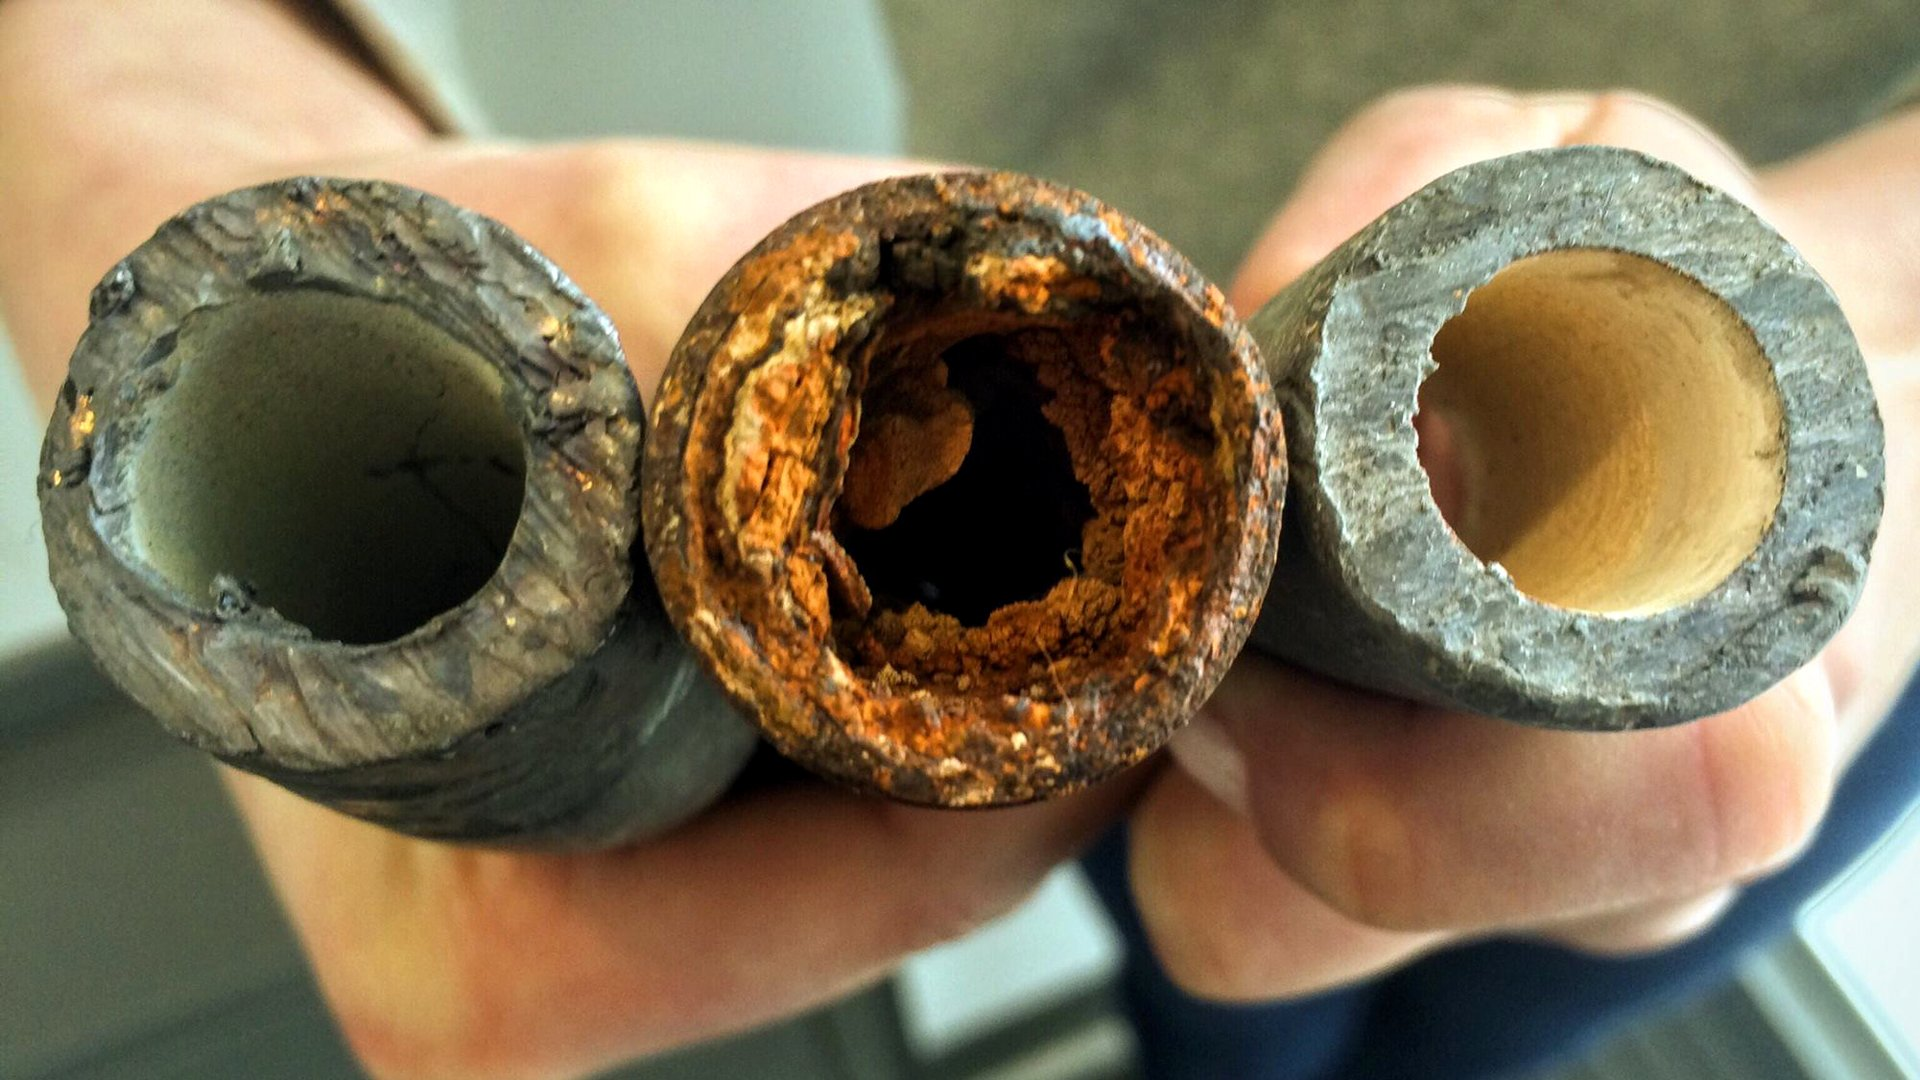 Corroded lead pipes